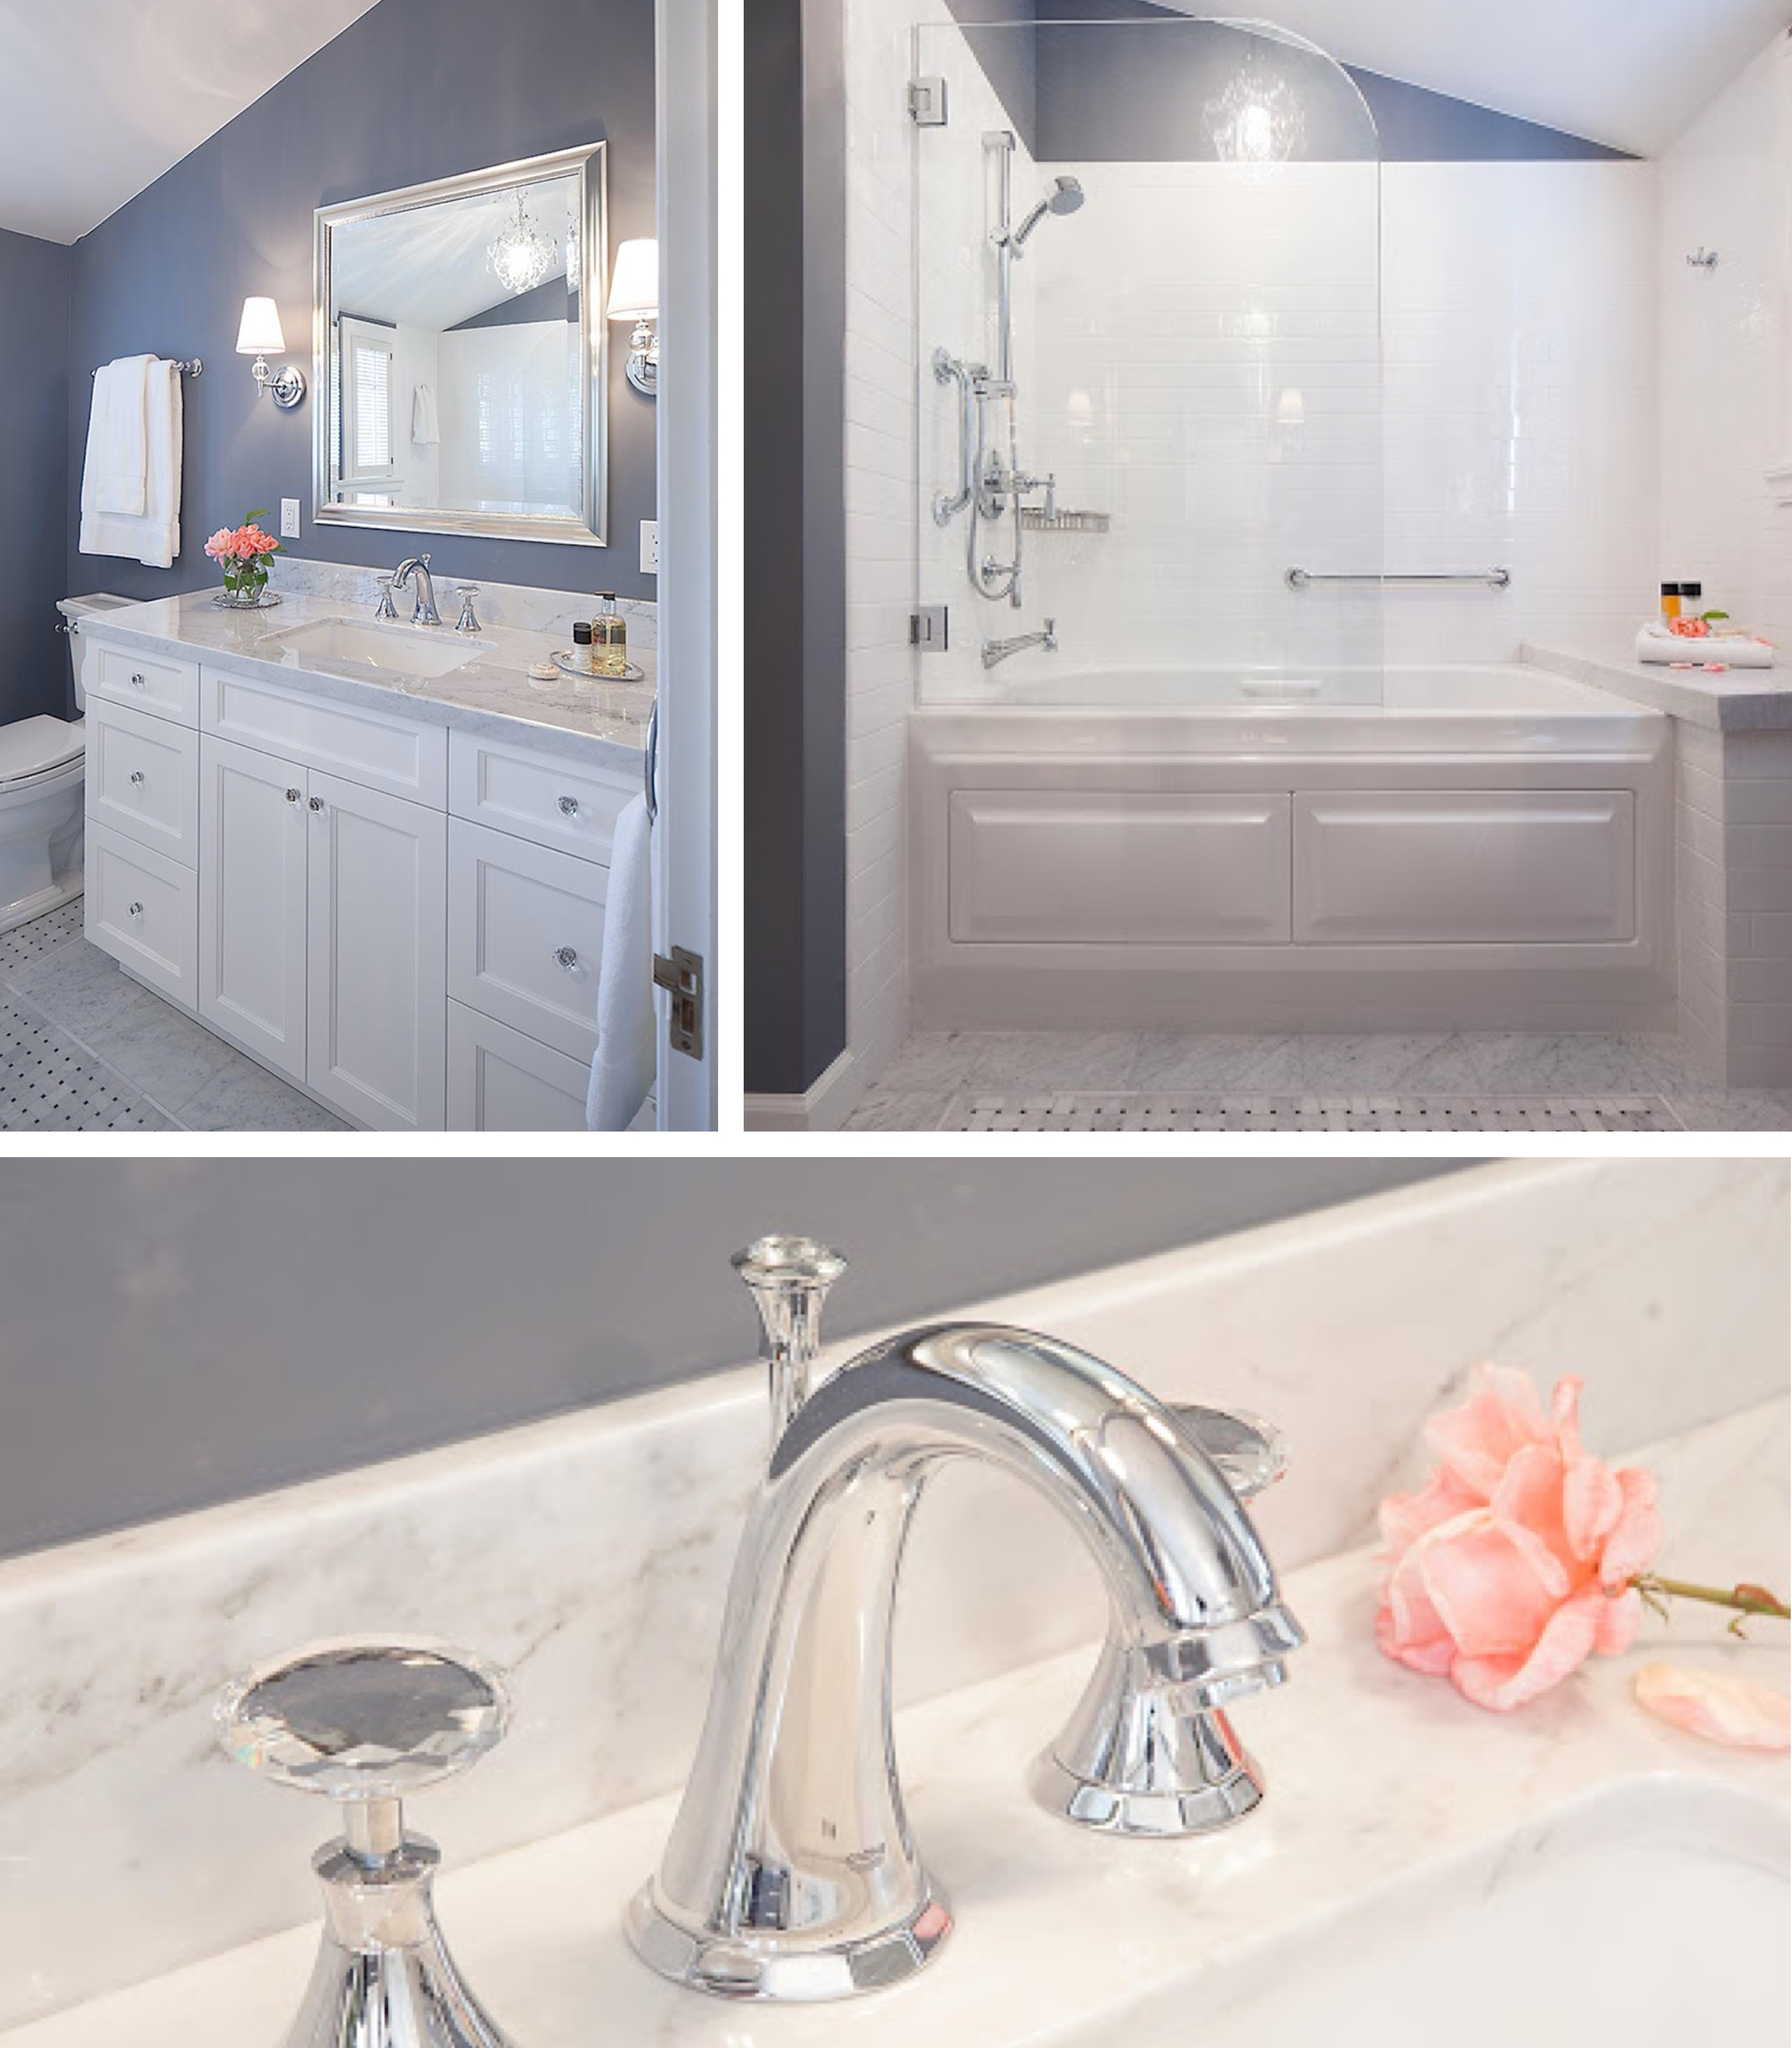 Luxury Bathroom Remodels in the East Bay - Harmoni Frameless Cabinetry - Pivoting Shower Screen - Carrara Marble Countertop - Bathroom - Custom Kitchens